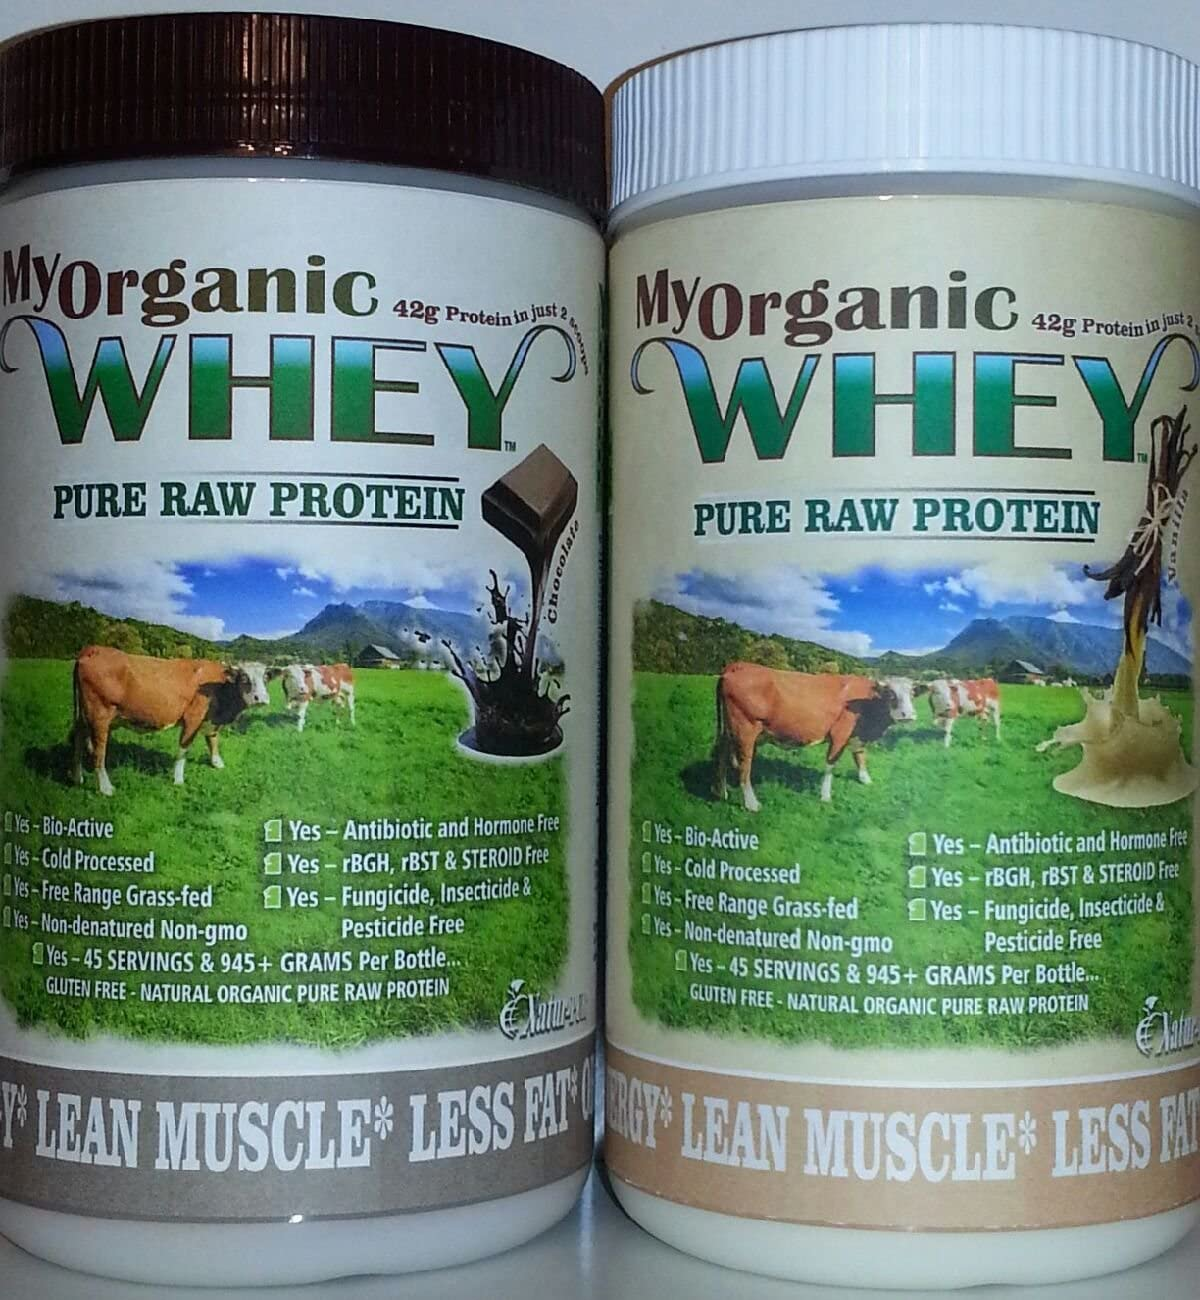 MyWHEY Grass-fed Organic Raw Whey Protein – Bio-active Cold Process Grade-A Milk Hormone-free Non-gmo Organic Whey Concentrated Powder Chocolate 4lb 3,780g Protein 180 Serving 0.93 by Natur-Pur